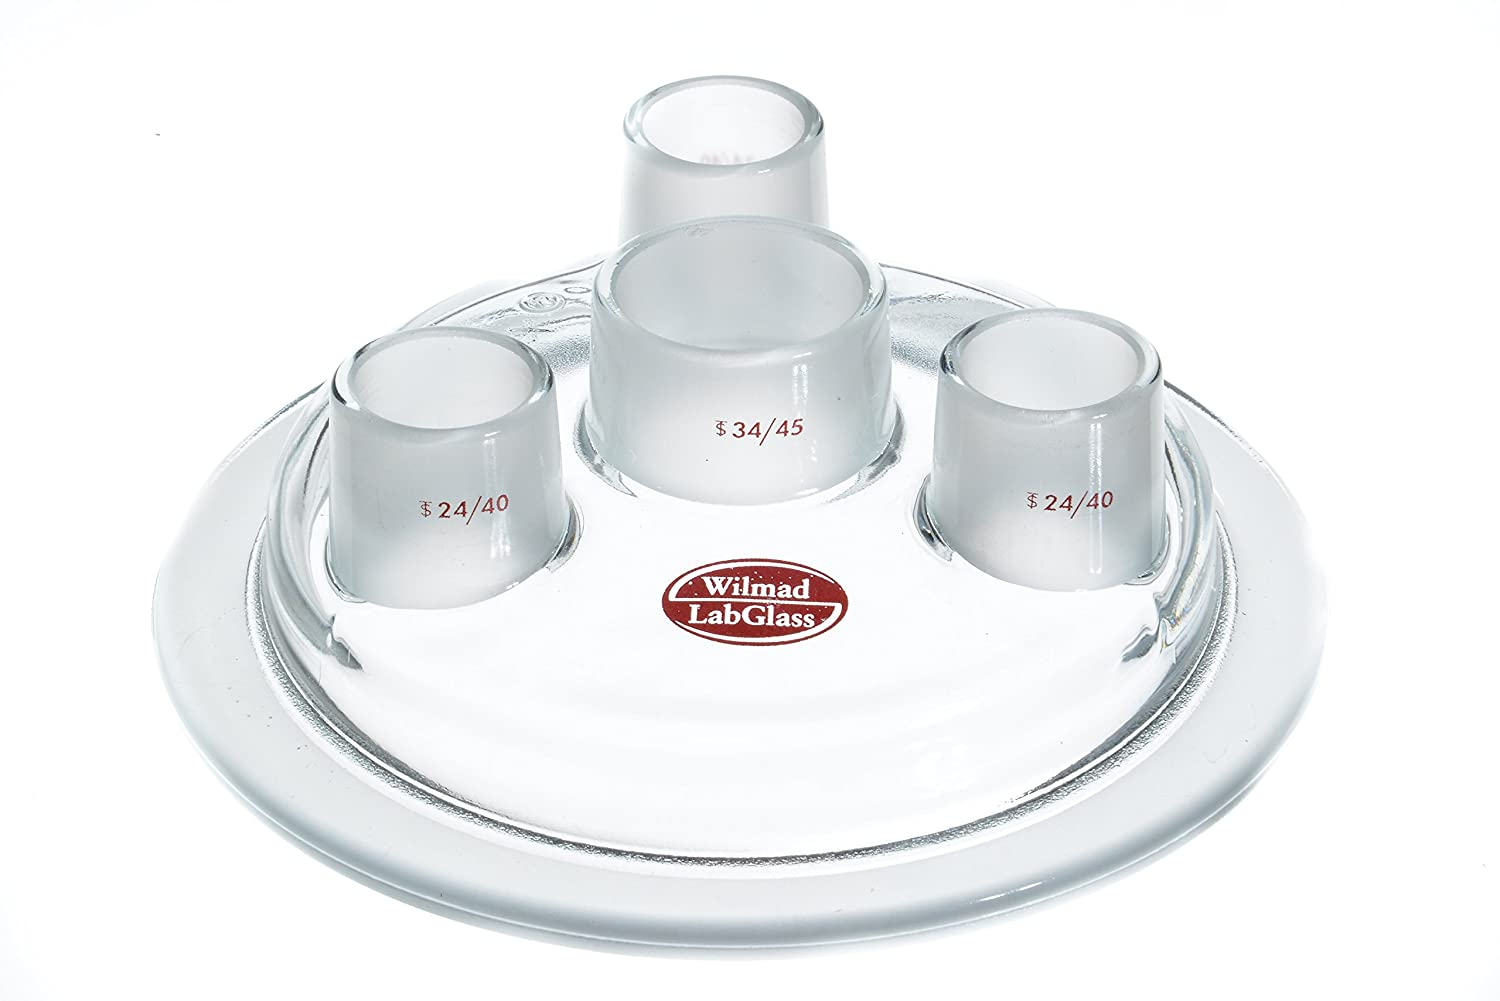 Wilmad-LabGlass Classic 70% OFF Outlet LG-8083-100 4-Neck Flat Flange V Molded Reaction